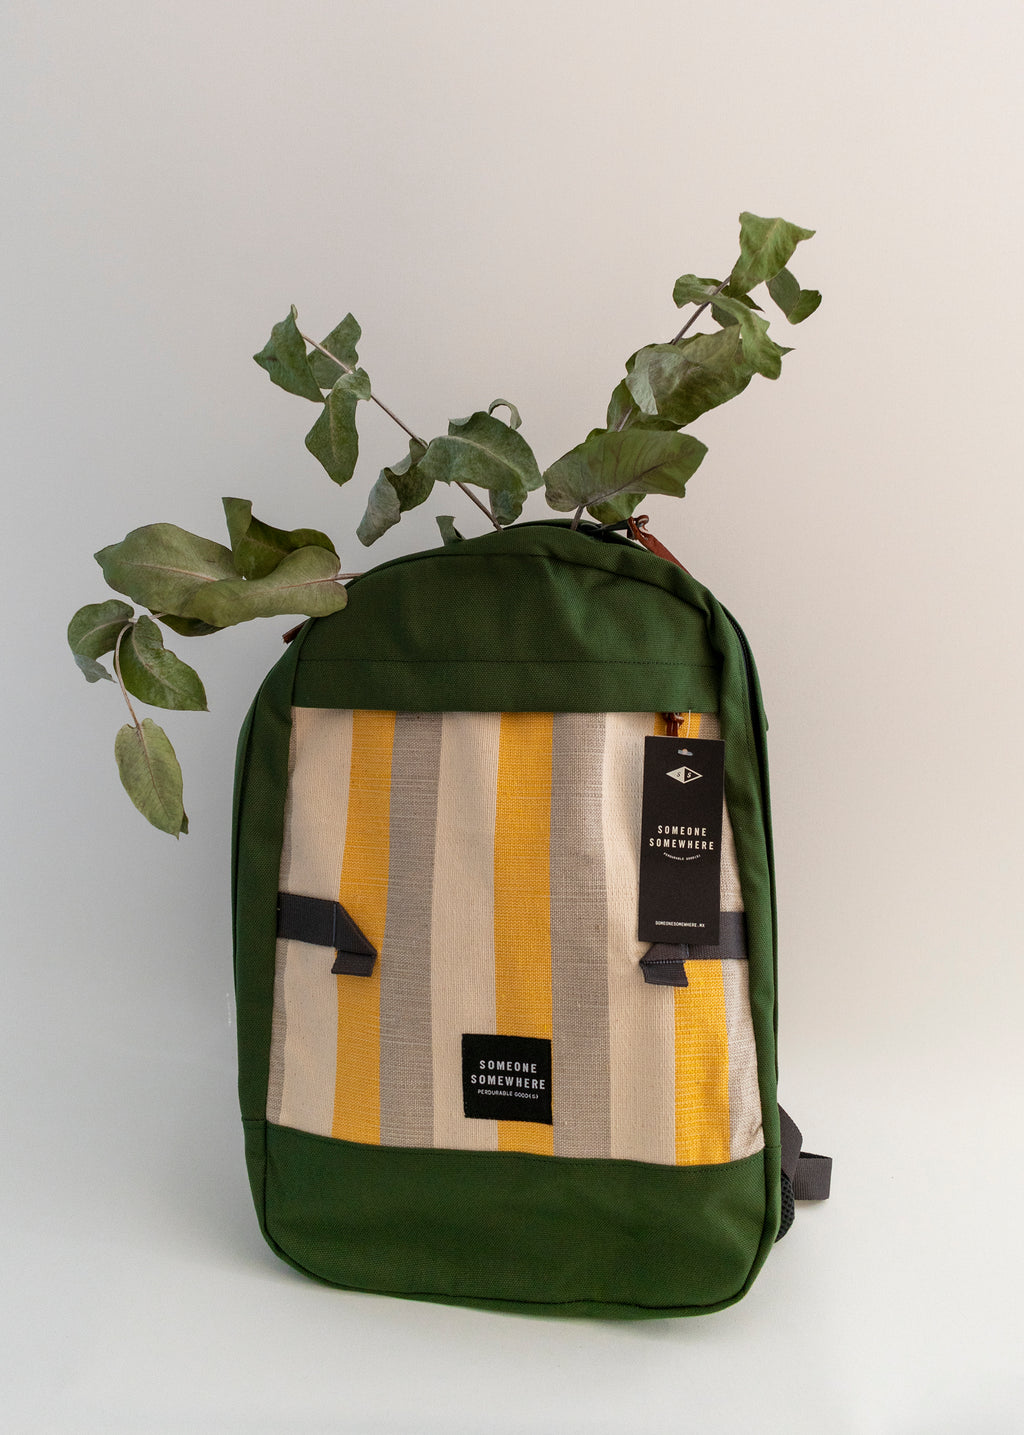 Green, yellow and white artisan rucksack with green leaves